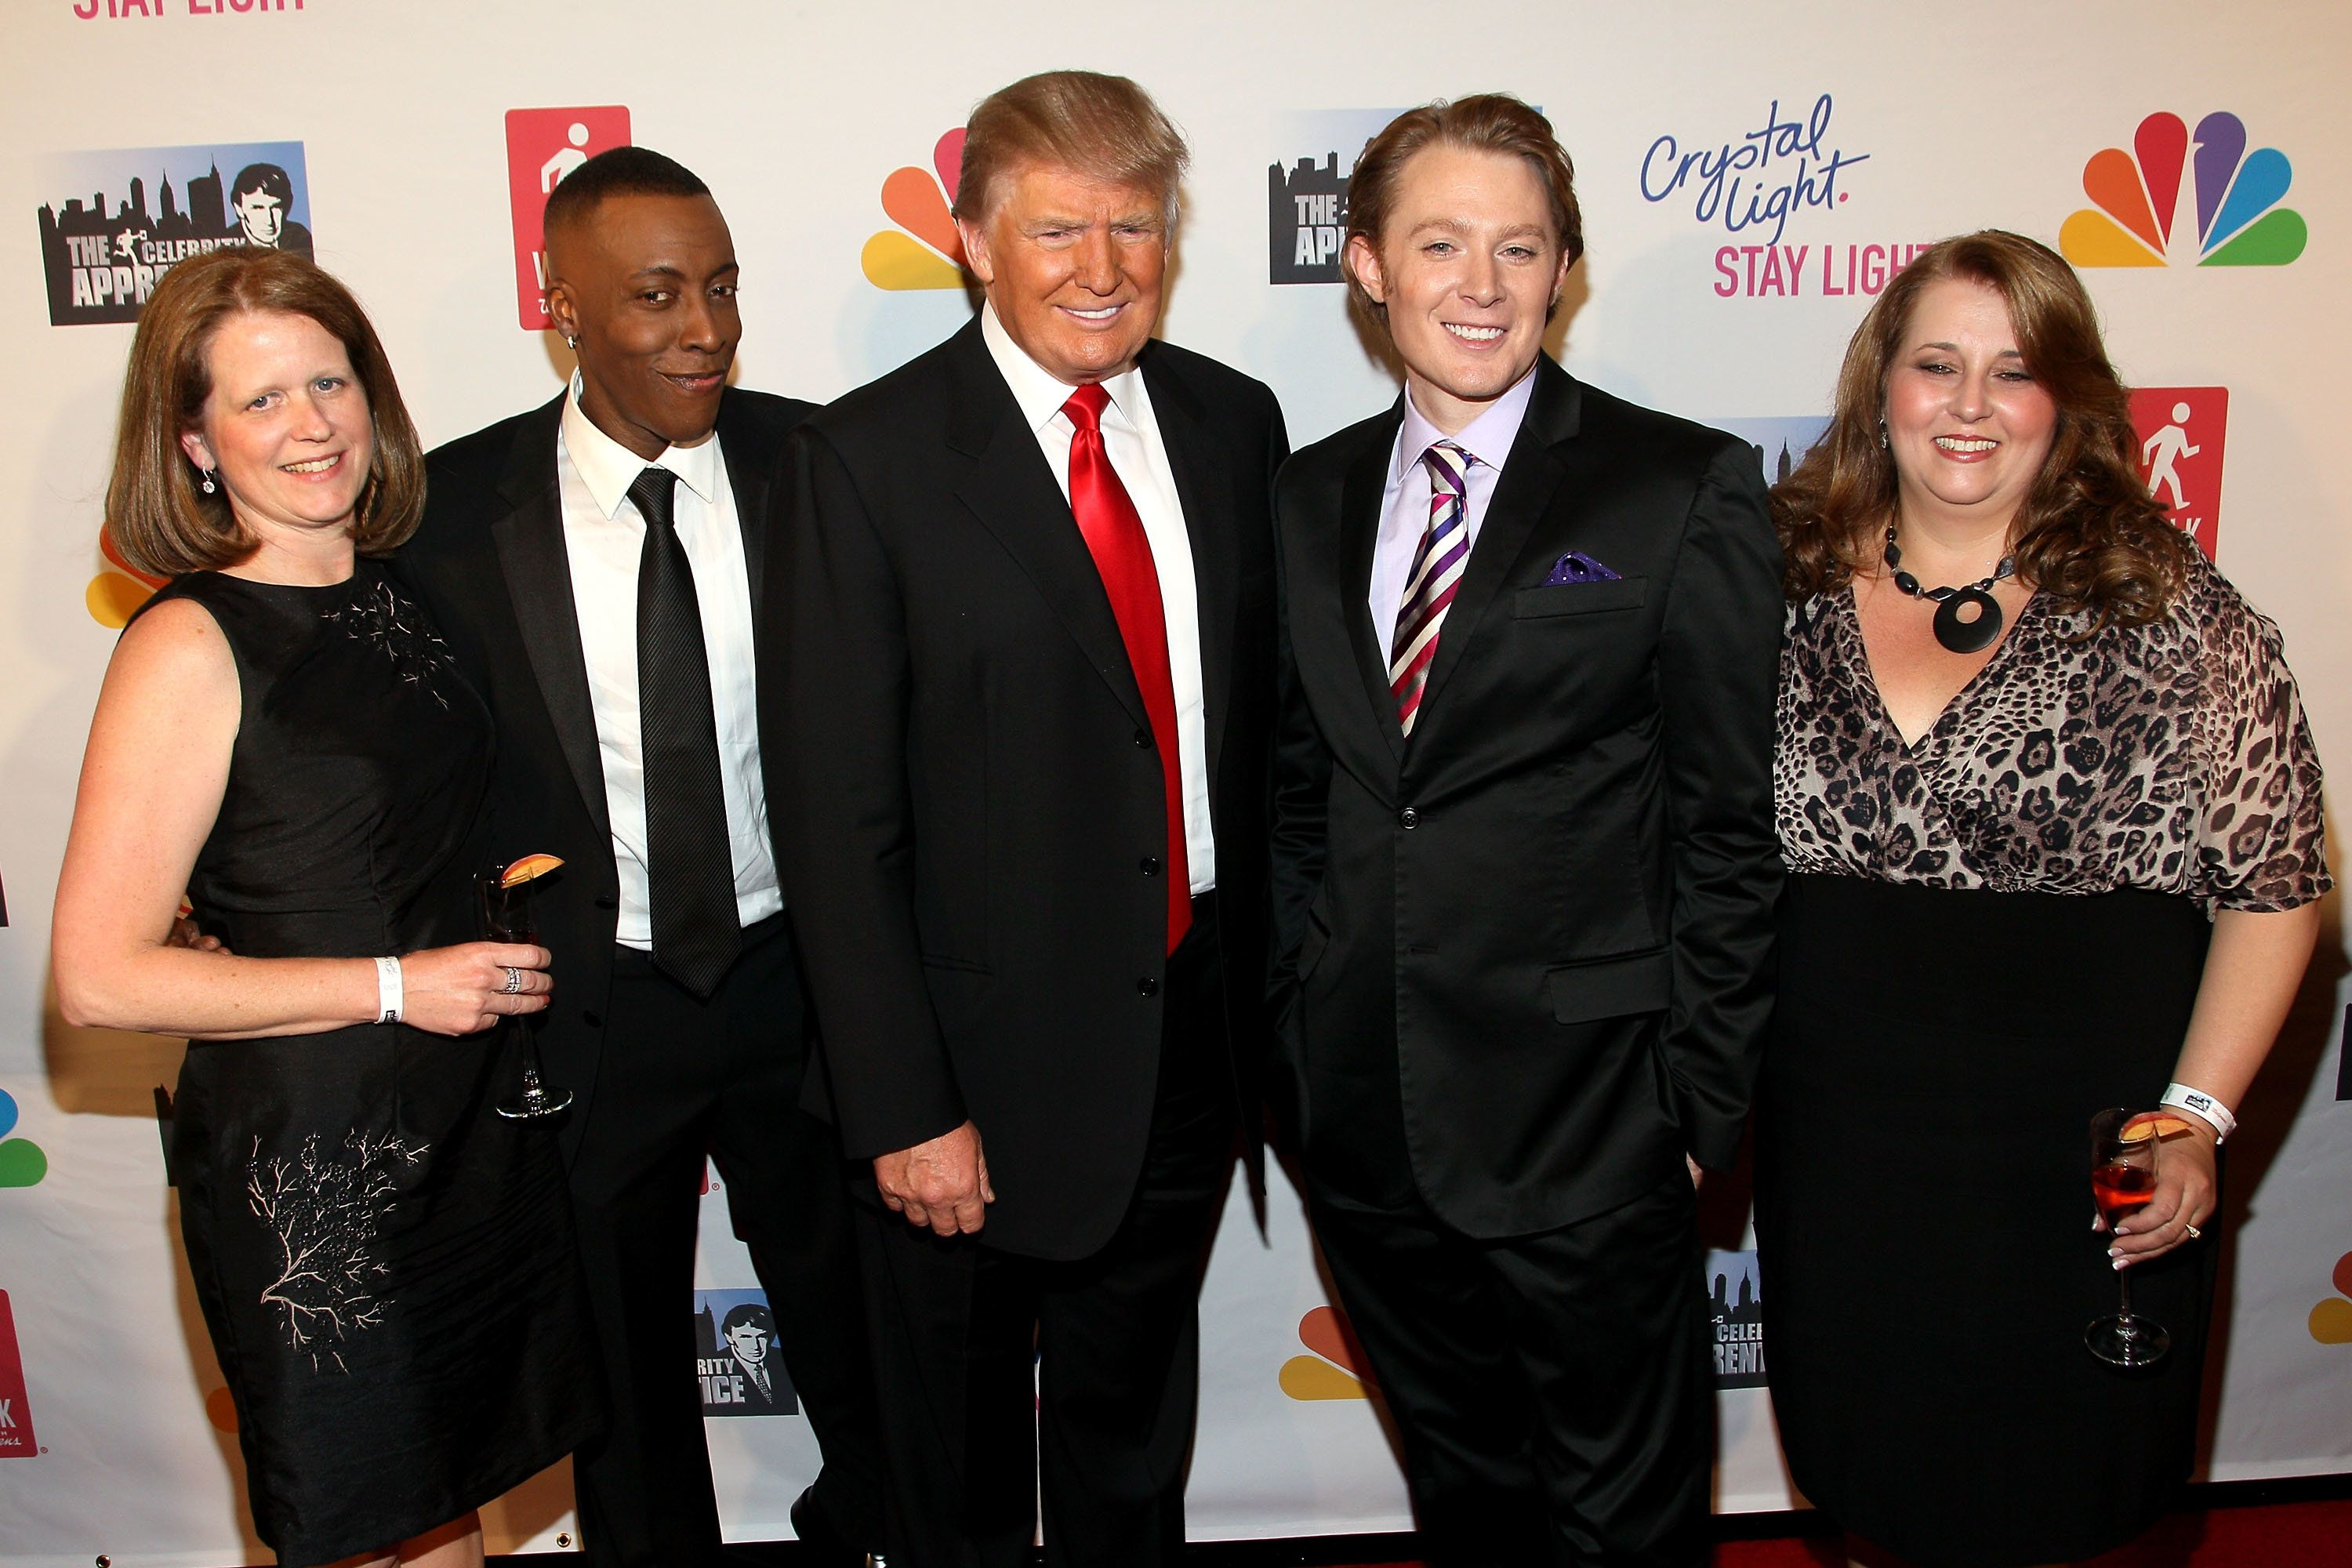 """He didn't make those decisions, he didn't fire those people,"" Clay Aiken said of Donald Trump."